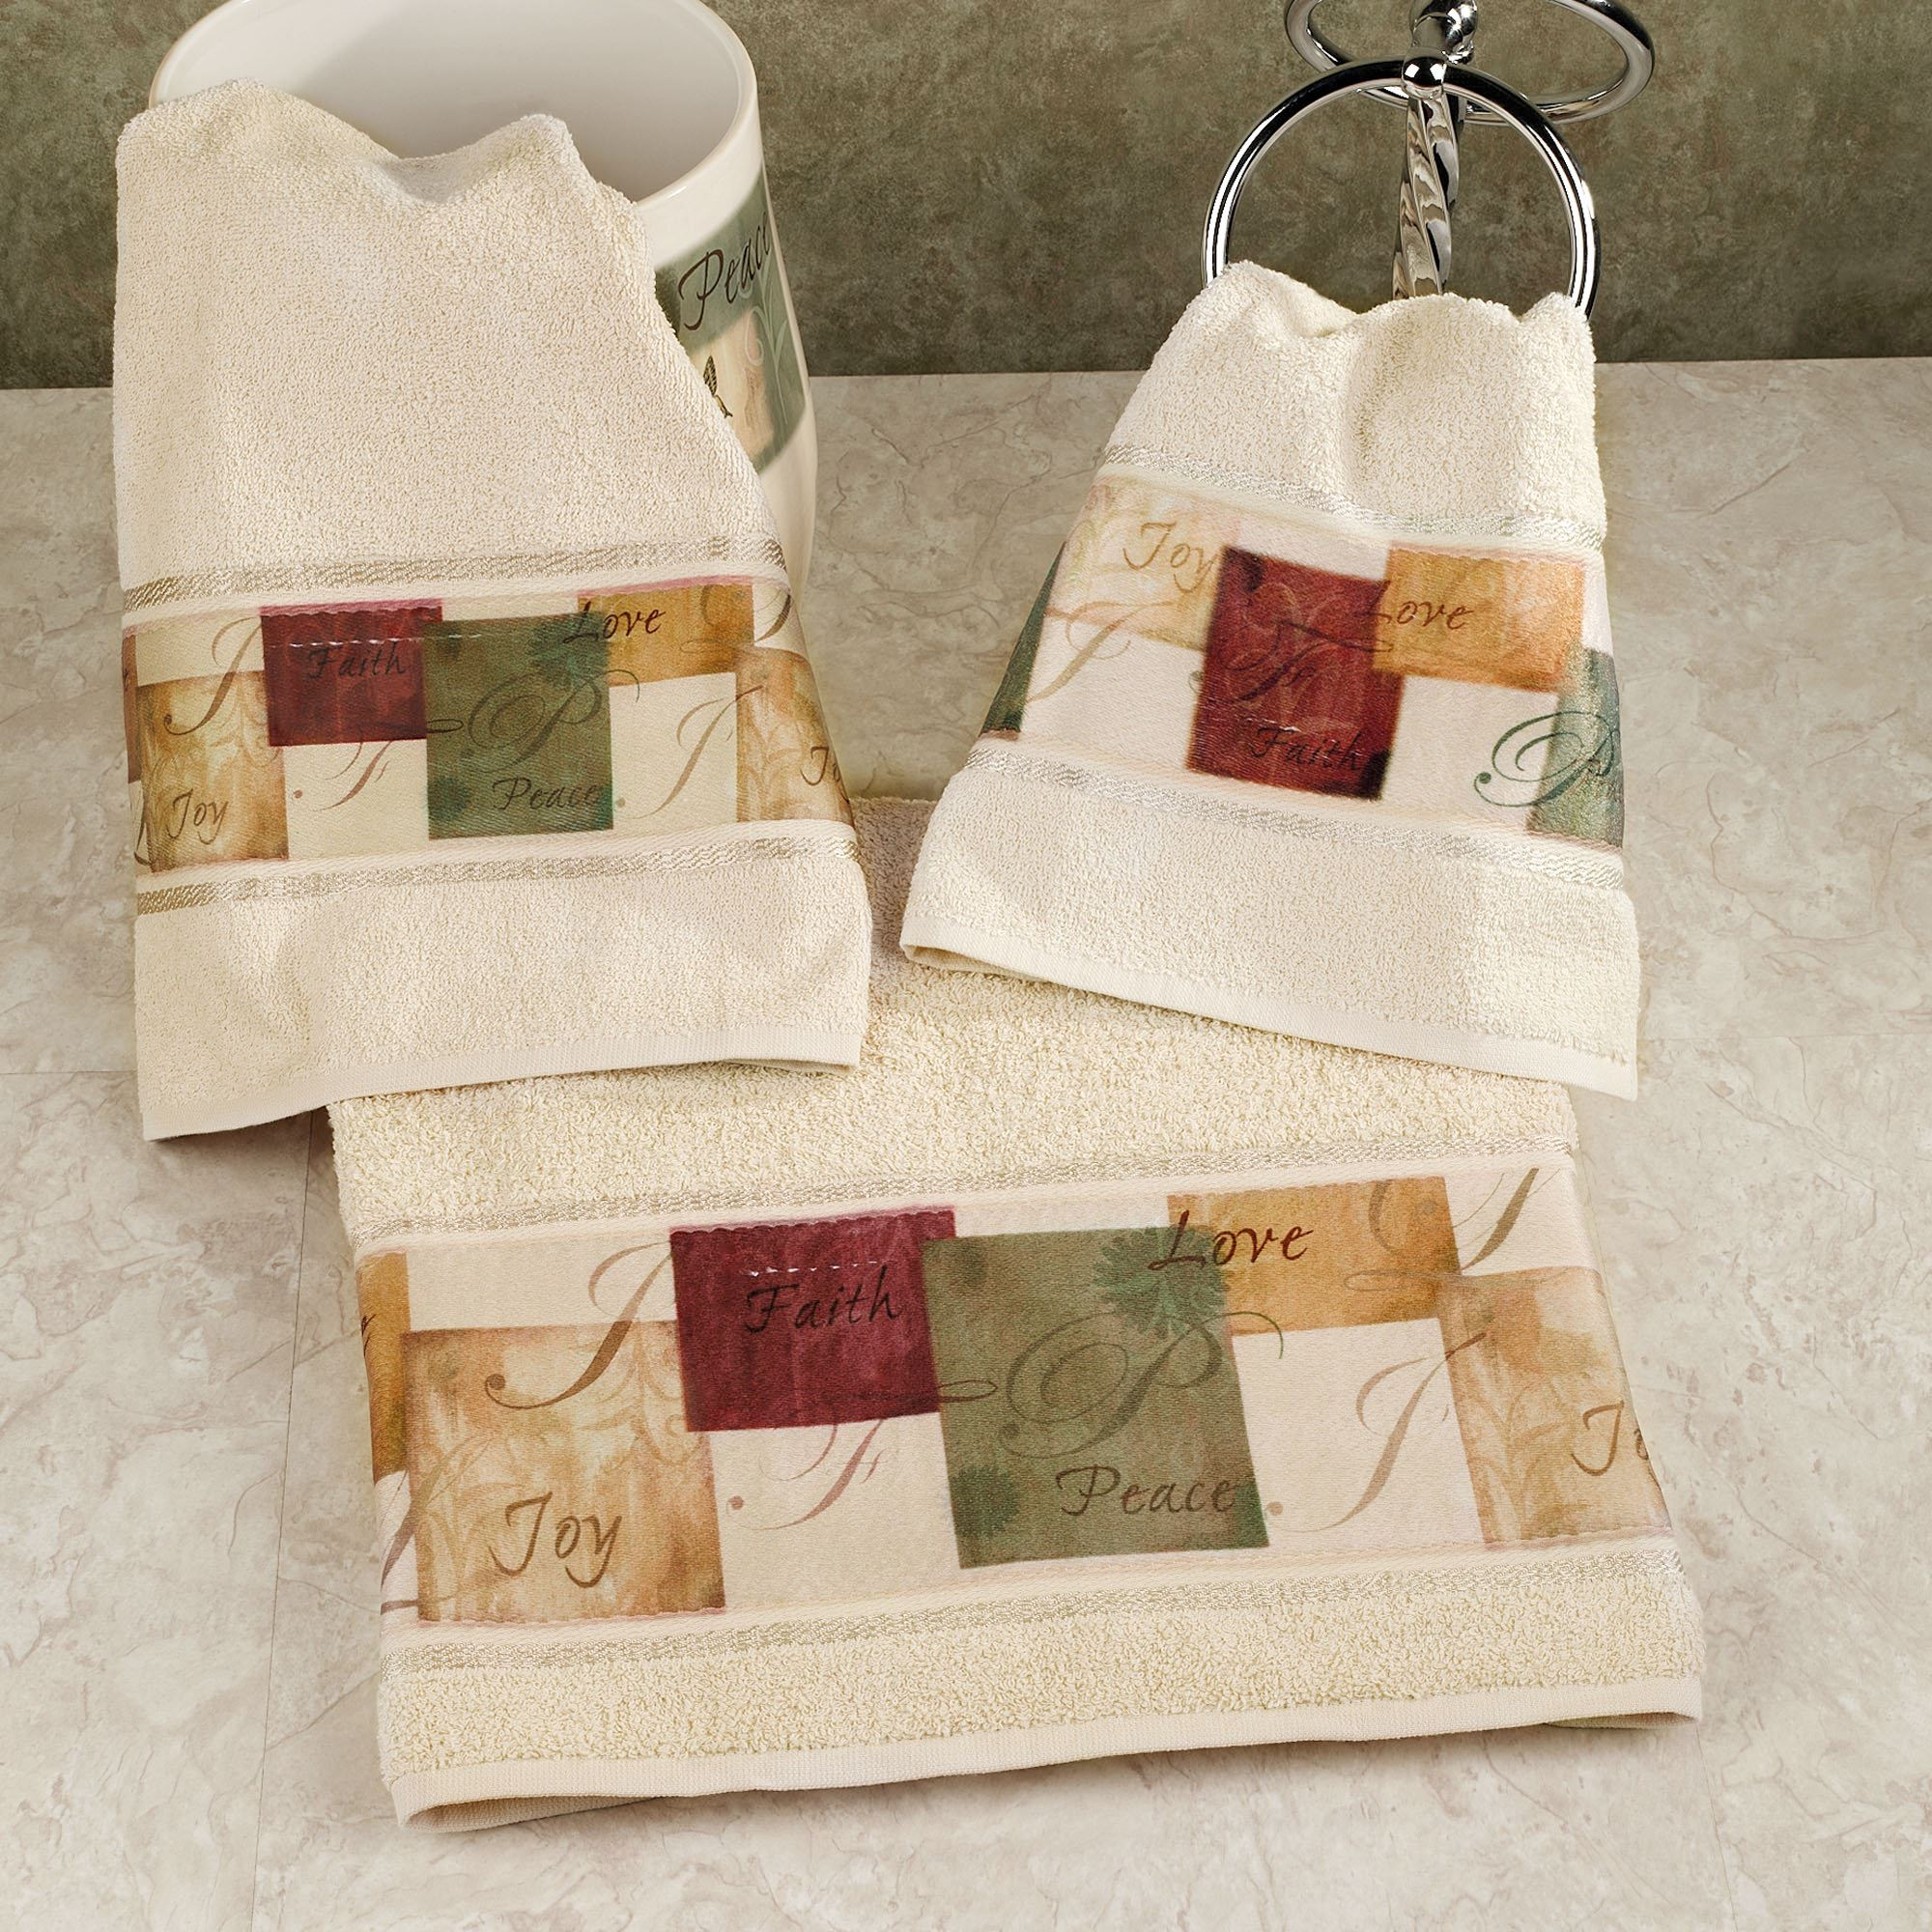 Tranquility Bath Towel Set Beige Hand Fingertip Touch To Zoom